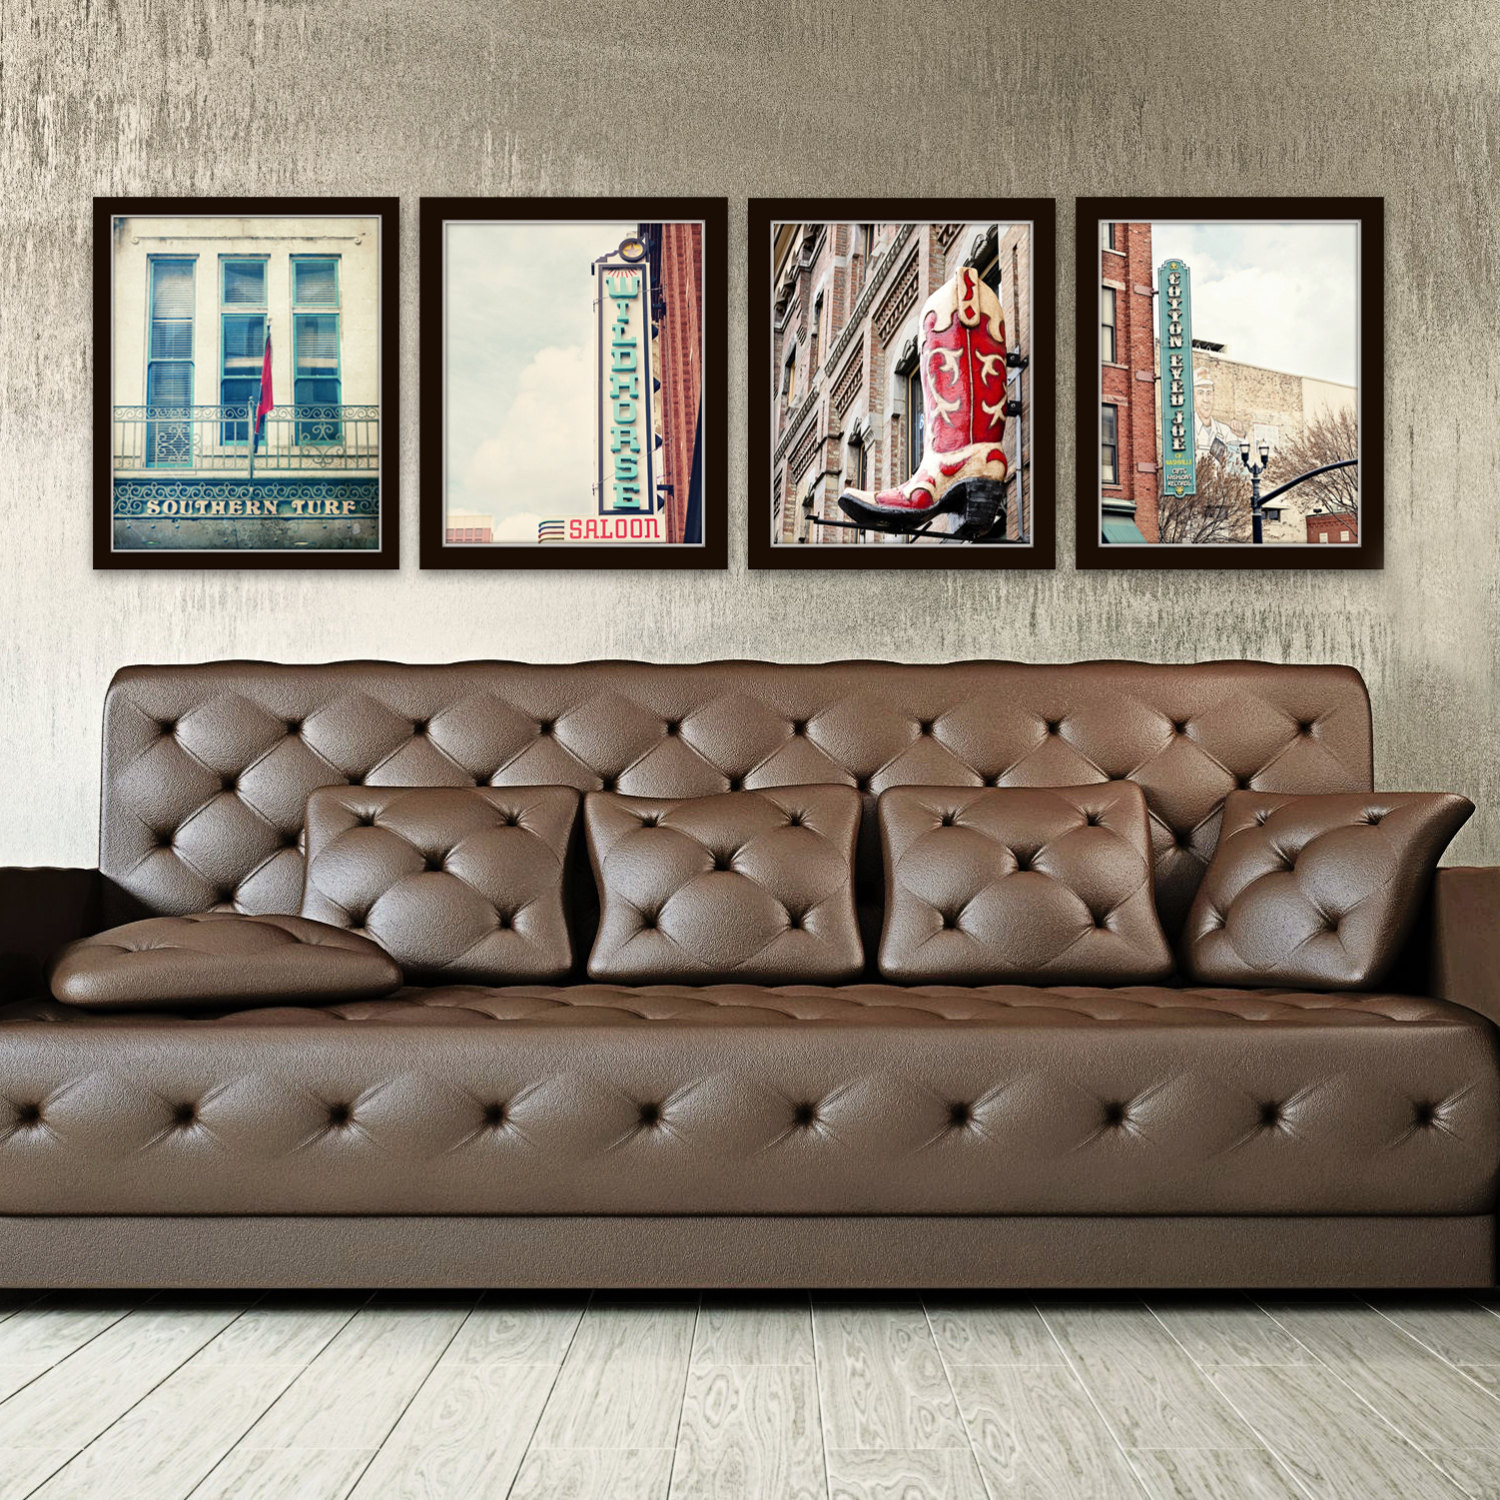 Best ideas about Industrial Wall Art . Save or Pin Nashville wall art industrial decor city photography set of 4 Now.